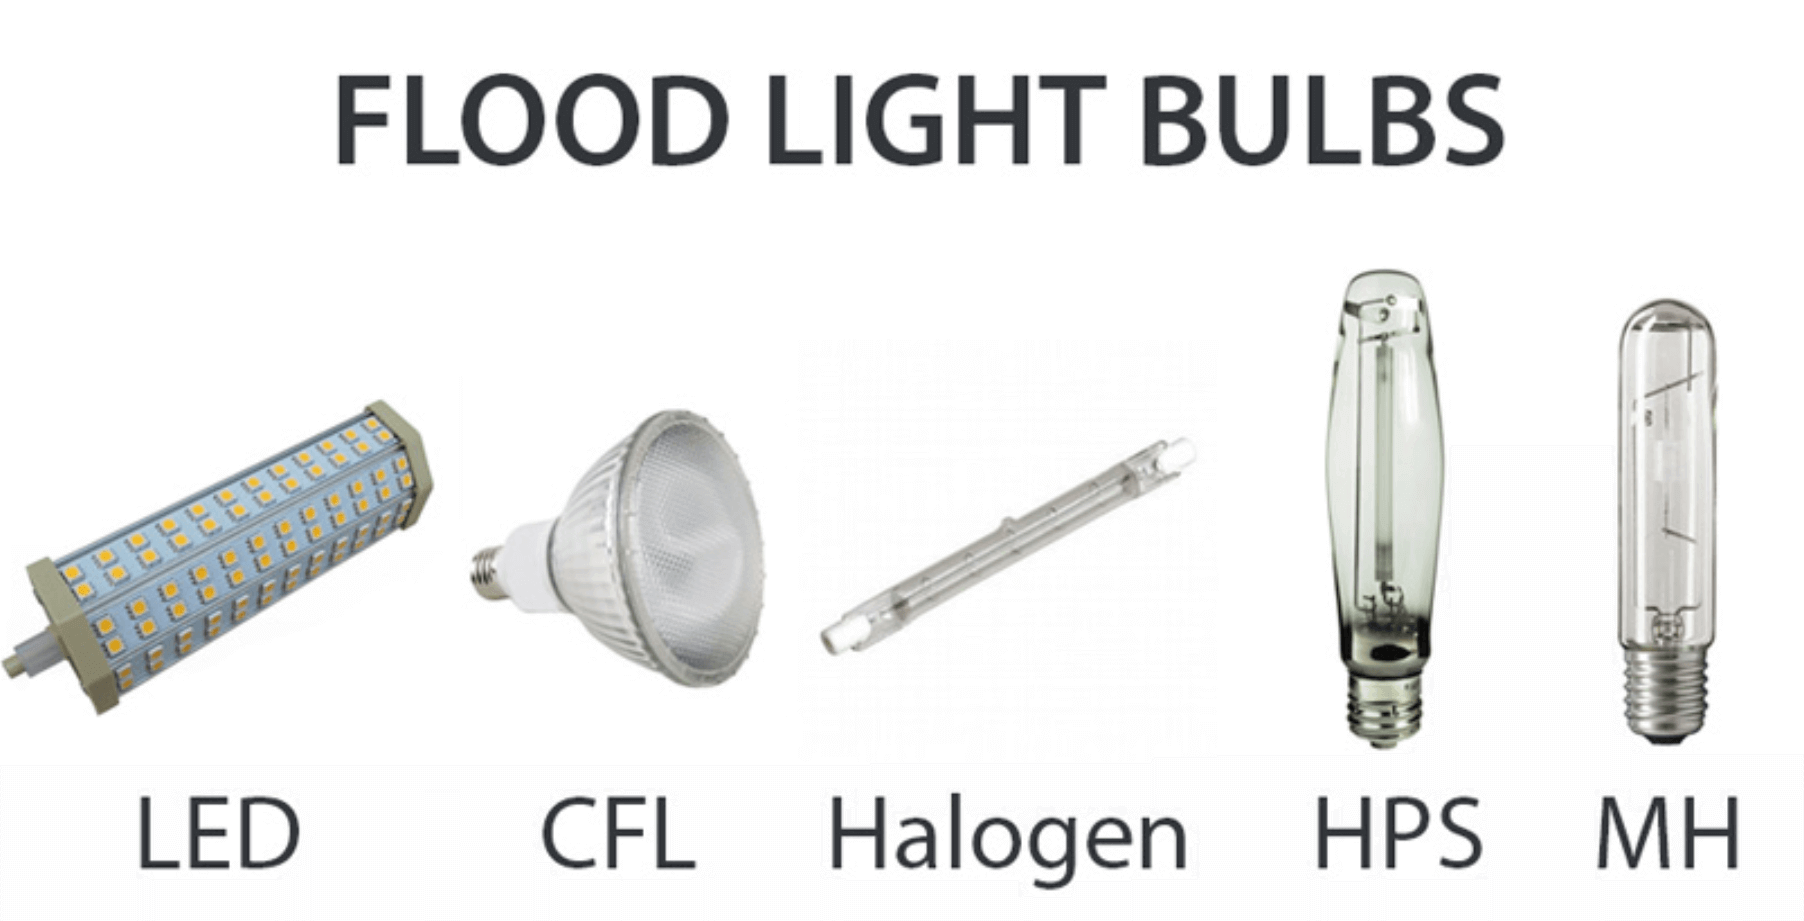 How do LED flood lights compare to other types of flood lights